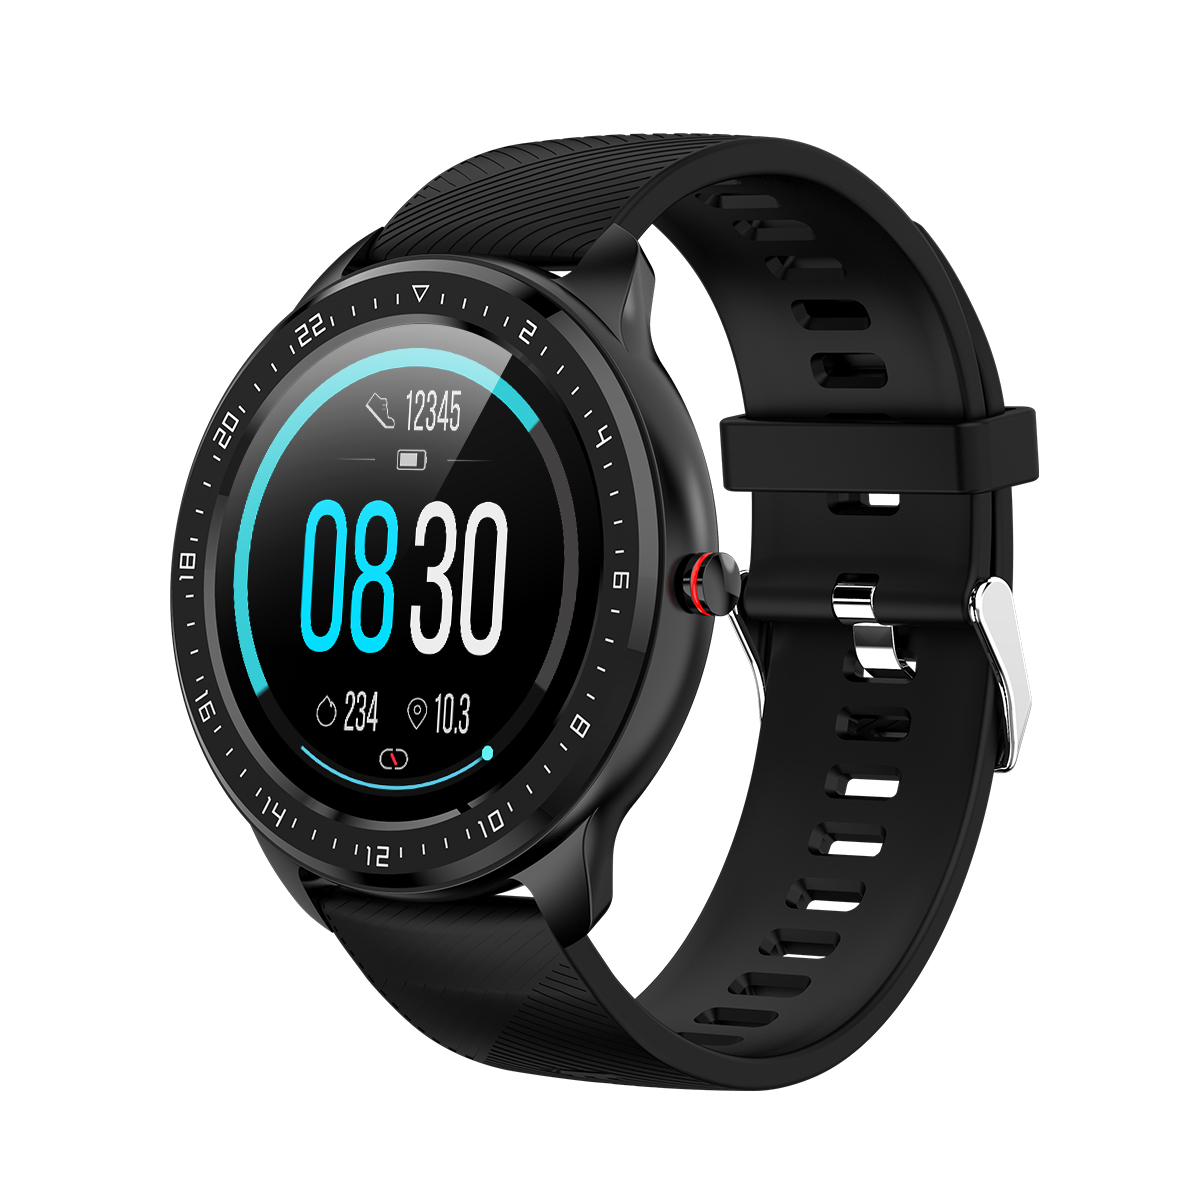 Full Touch Screen Smart Watch <strong>Z06</strong> Heart Rate Monitoring Blood Pressure Message Reminder Smart Bracelet for Women Men